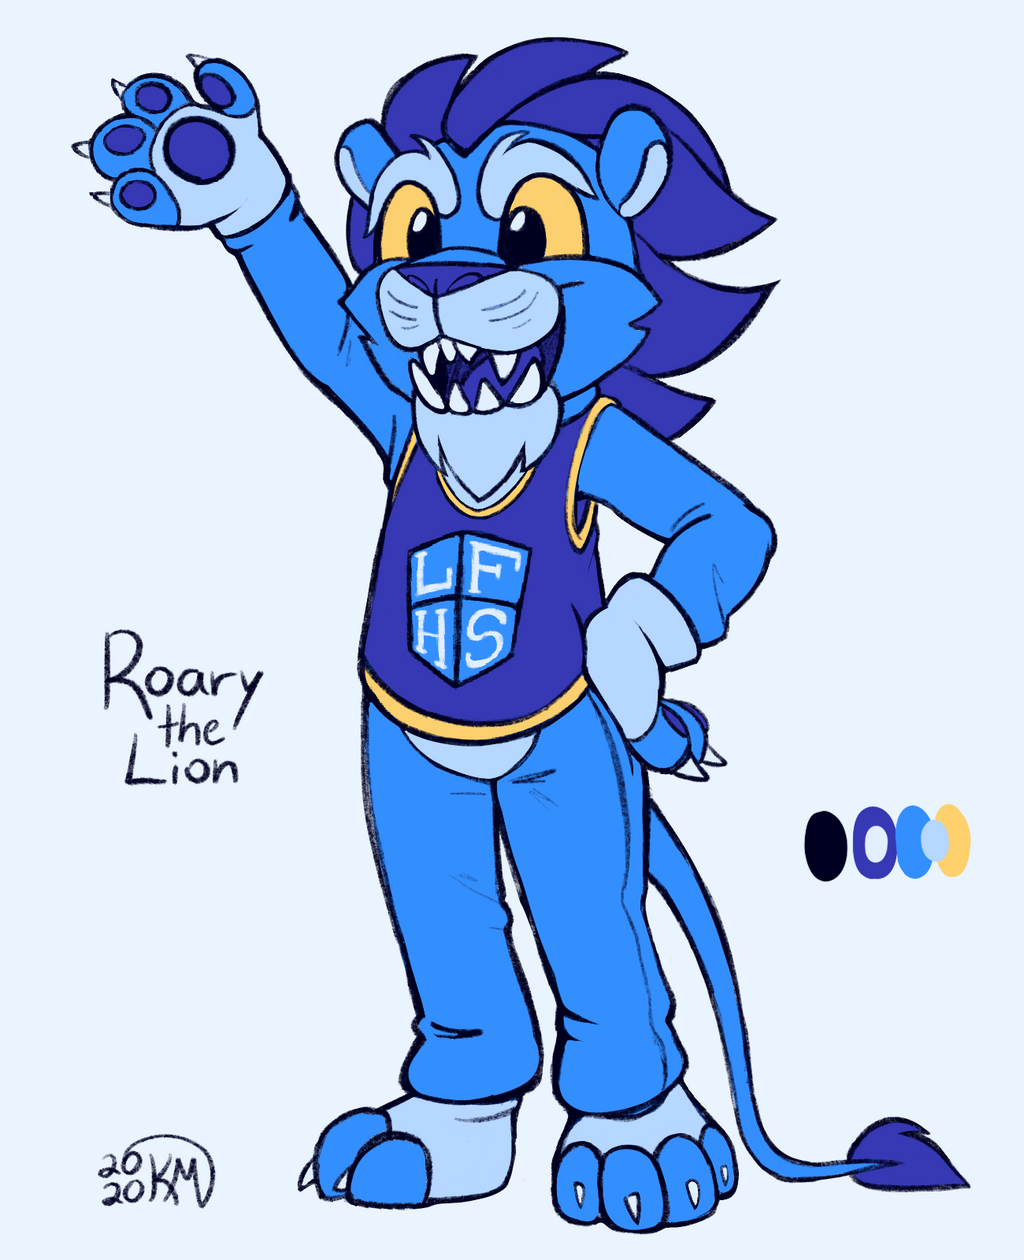 Most recent image: Roary the Lion